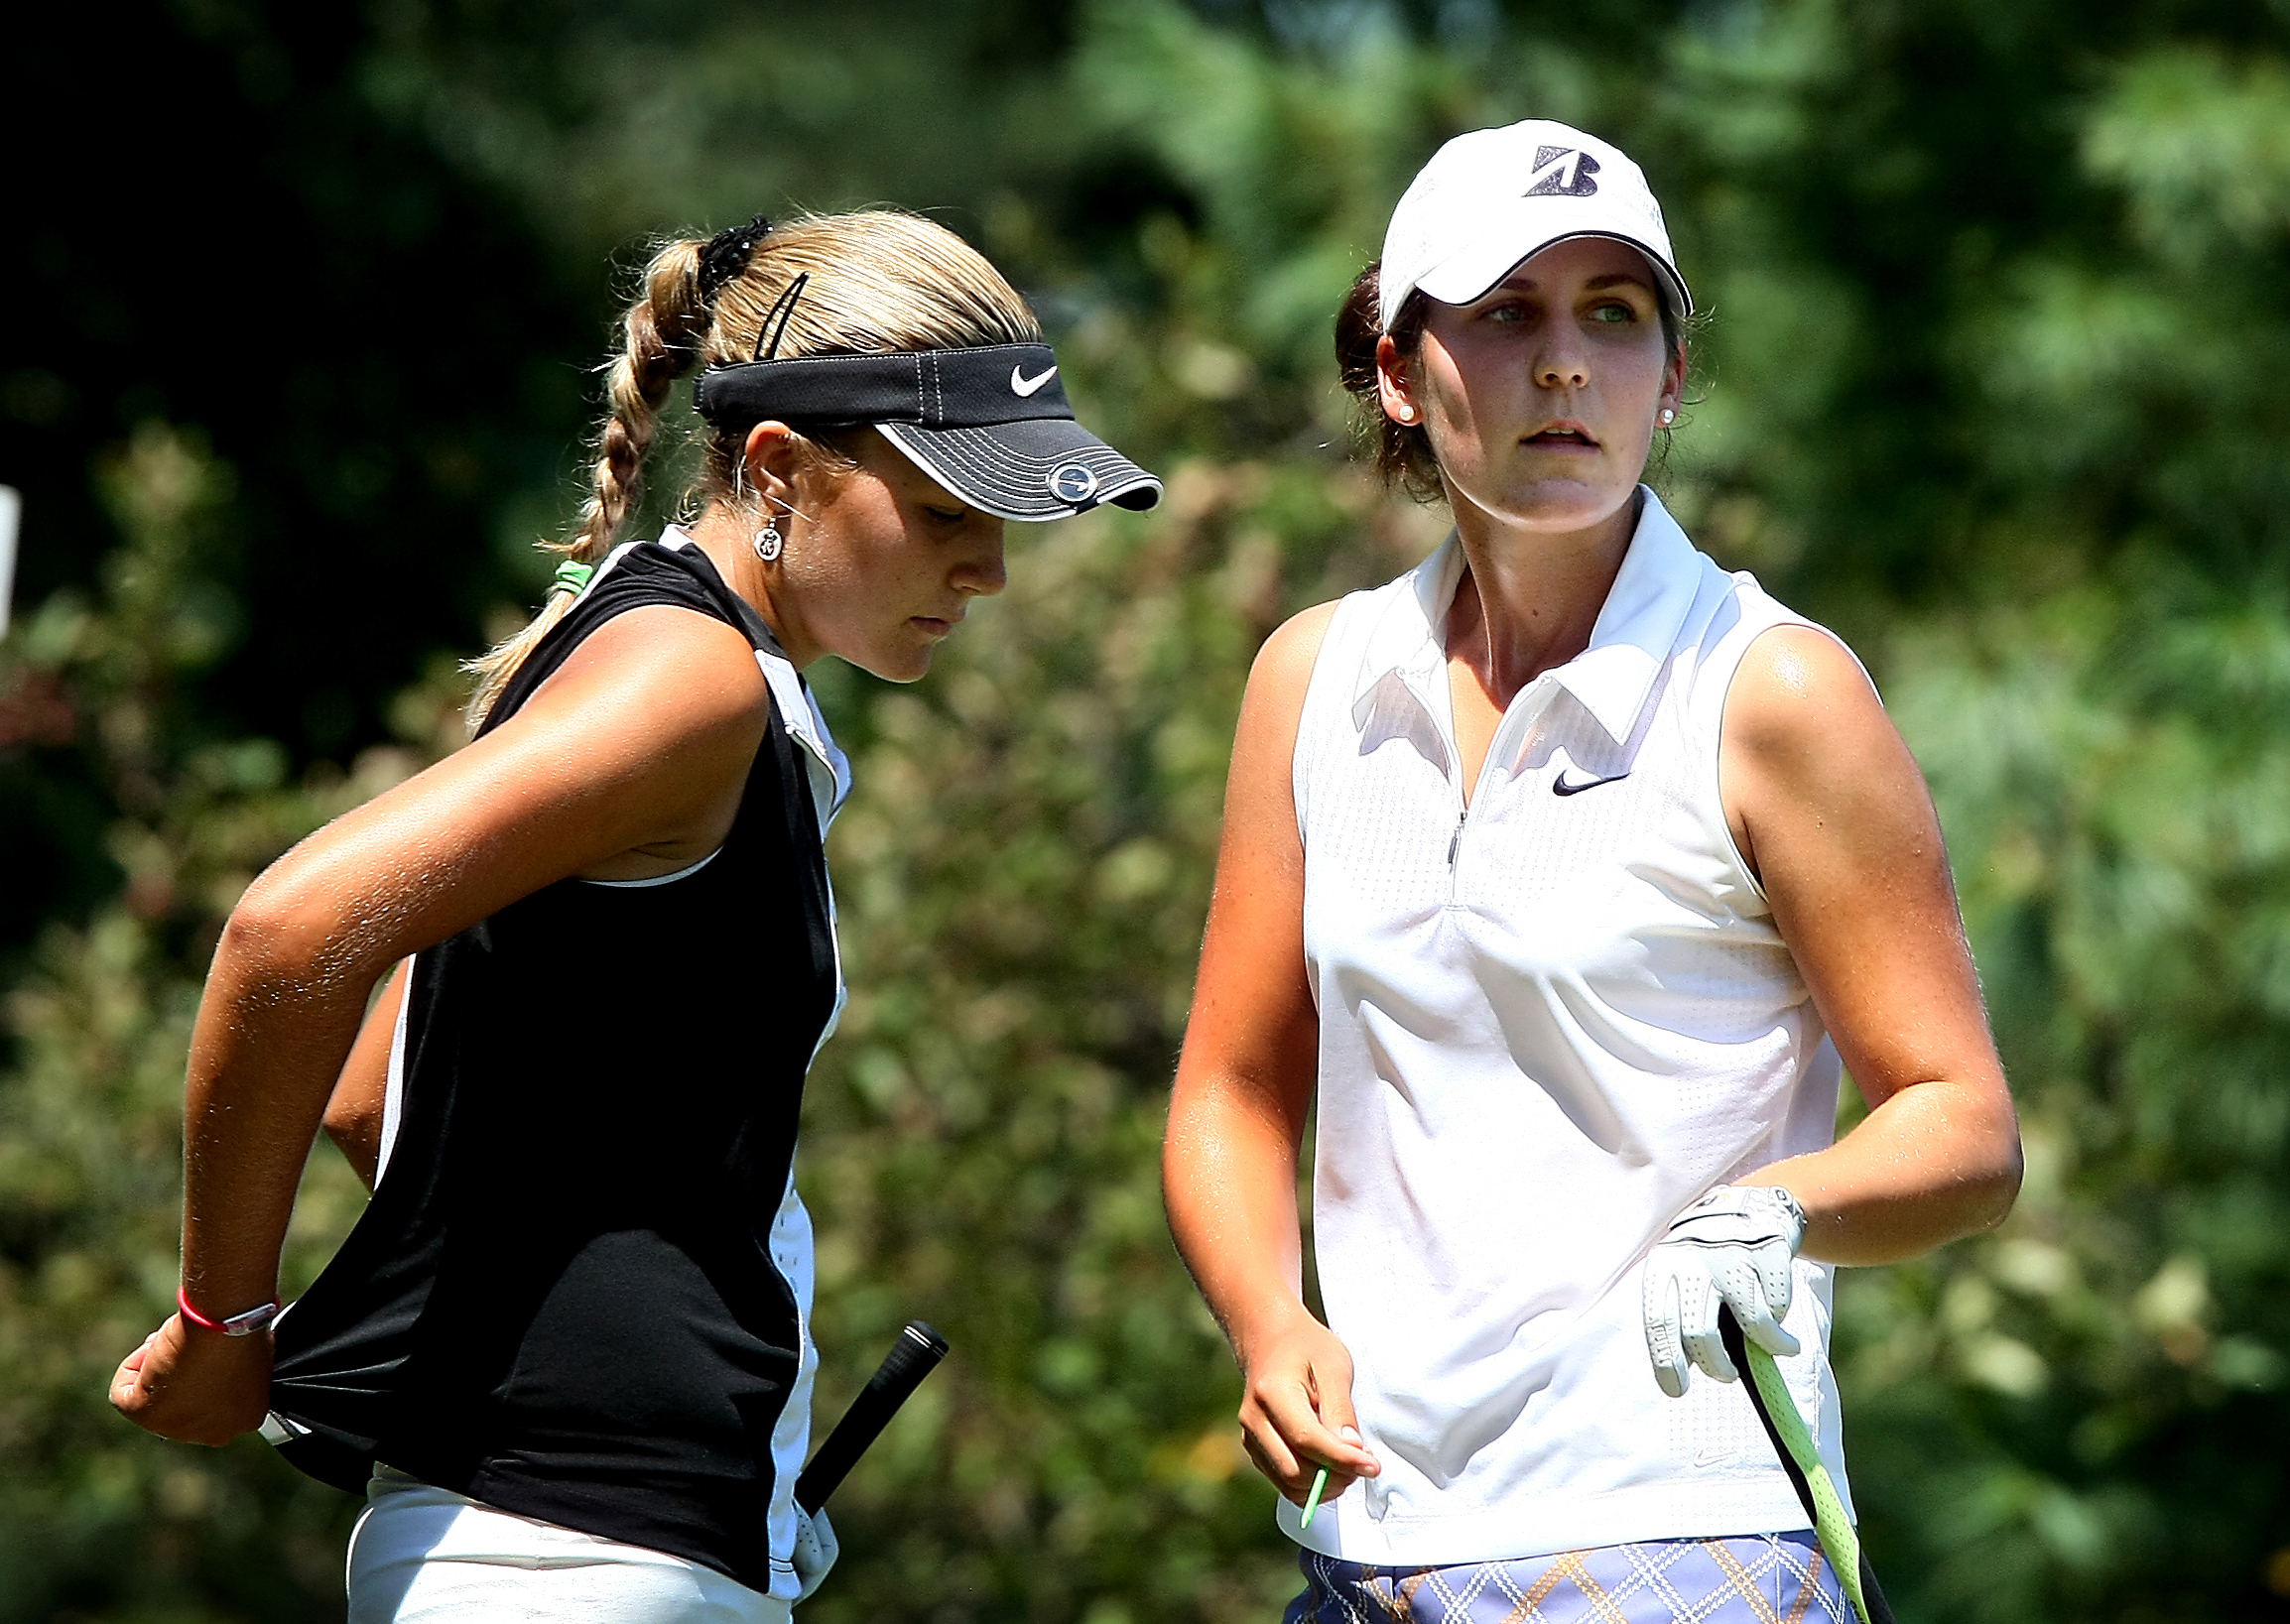 Jennifer Johnson (right) knocked out Alexis Thompson in the semifinals of last summer's U.S. Women's Amateur.